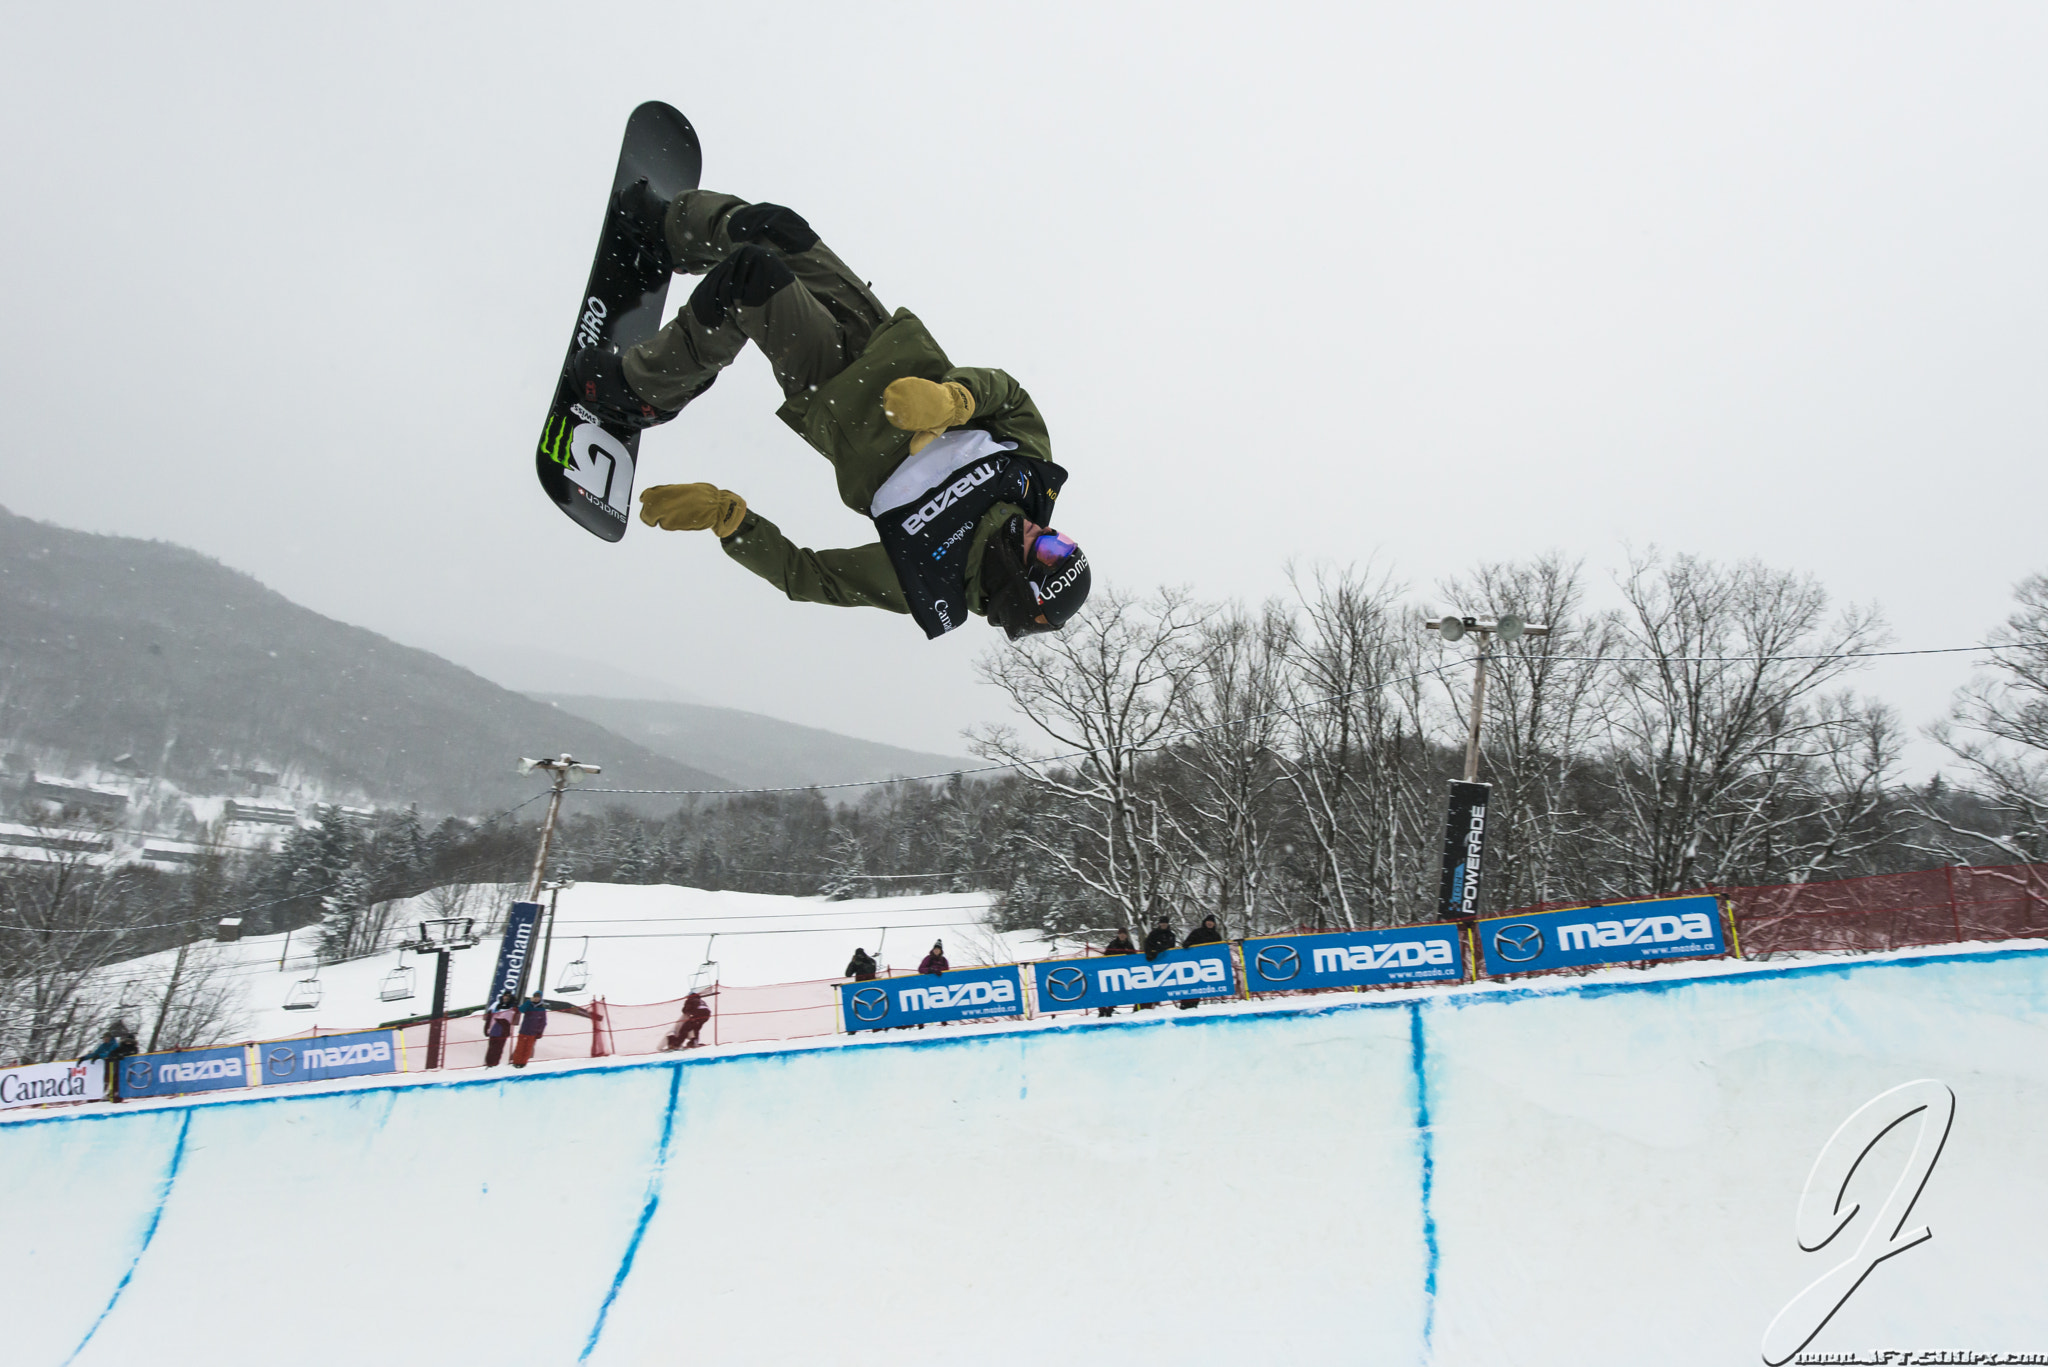 Photograph Christian Haller - SUI - FIS Snowboard World Championship 2013 - Half-Pipe by Jean-Francois Thibeault on 500px